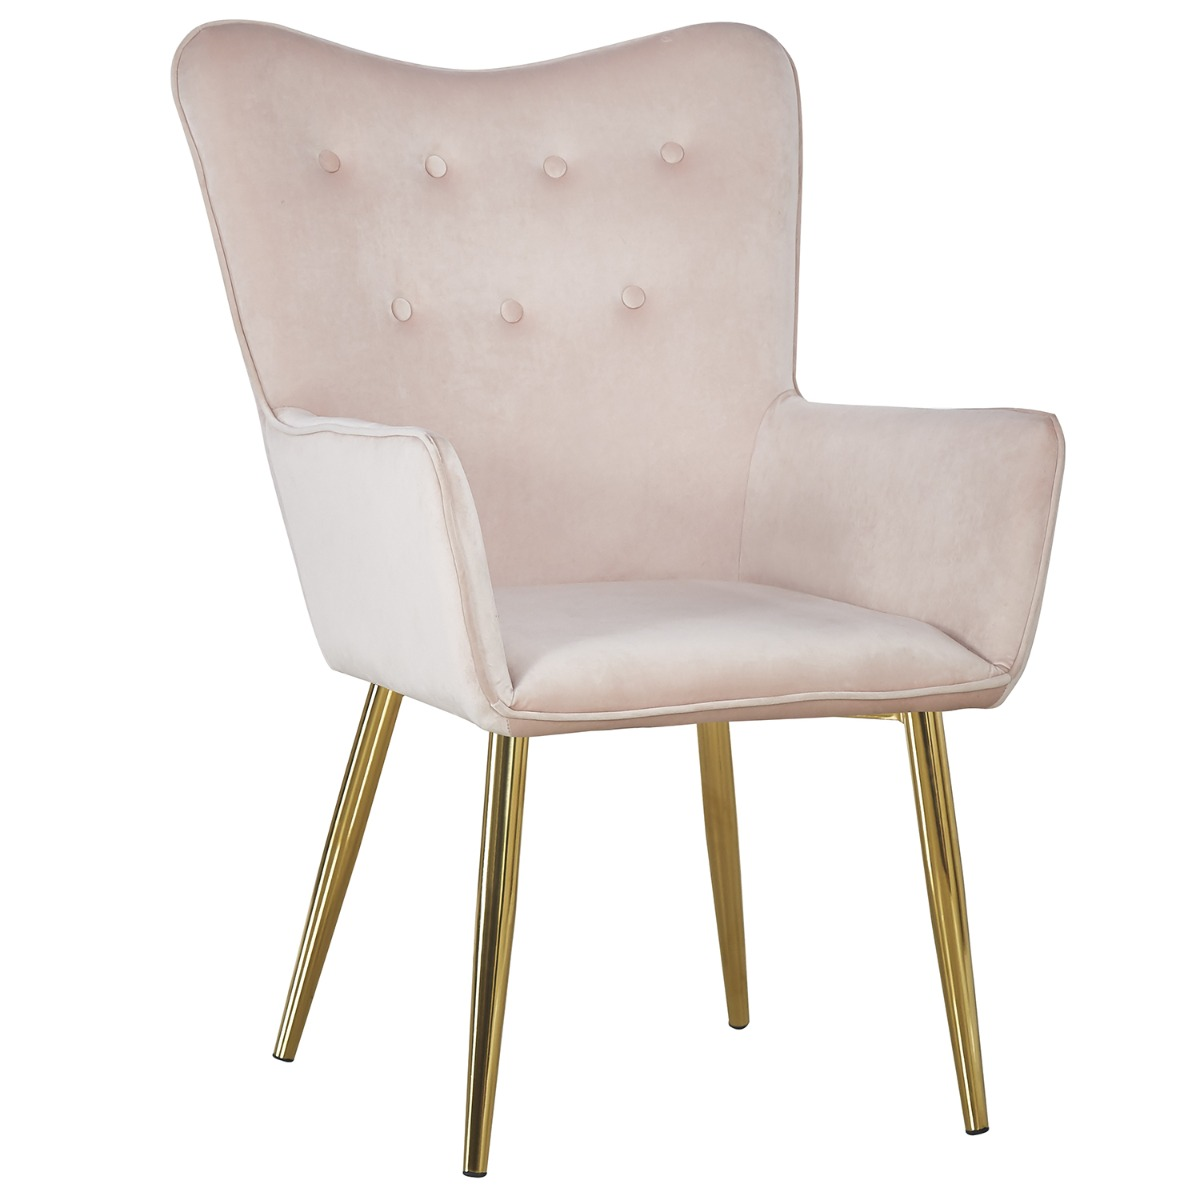 Fauteuil scandinave Nadol Velours Rose pieds Or